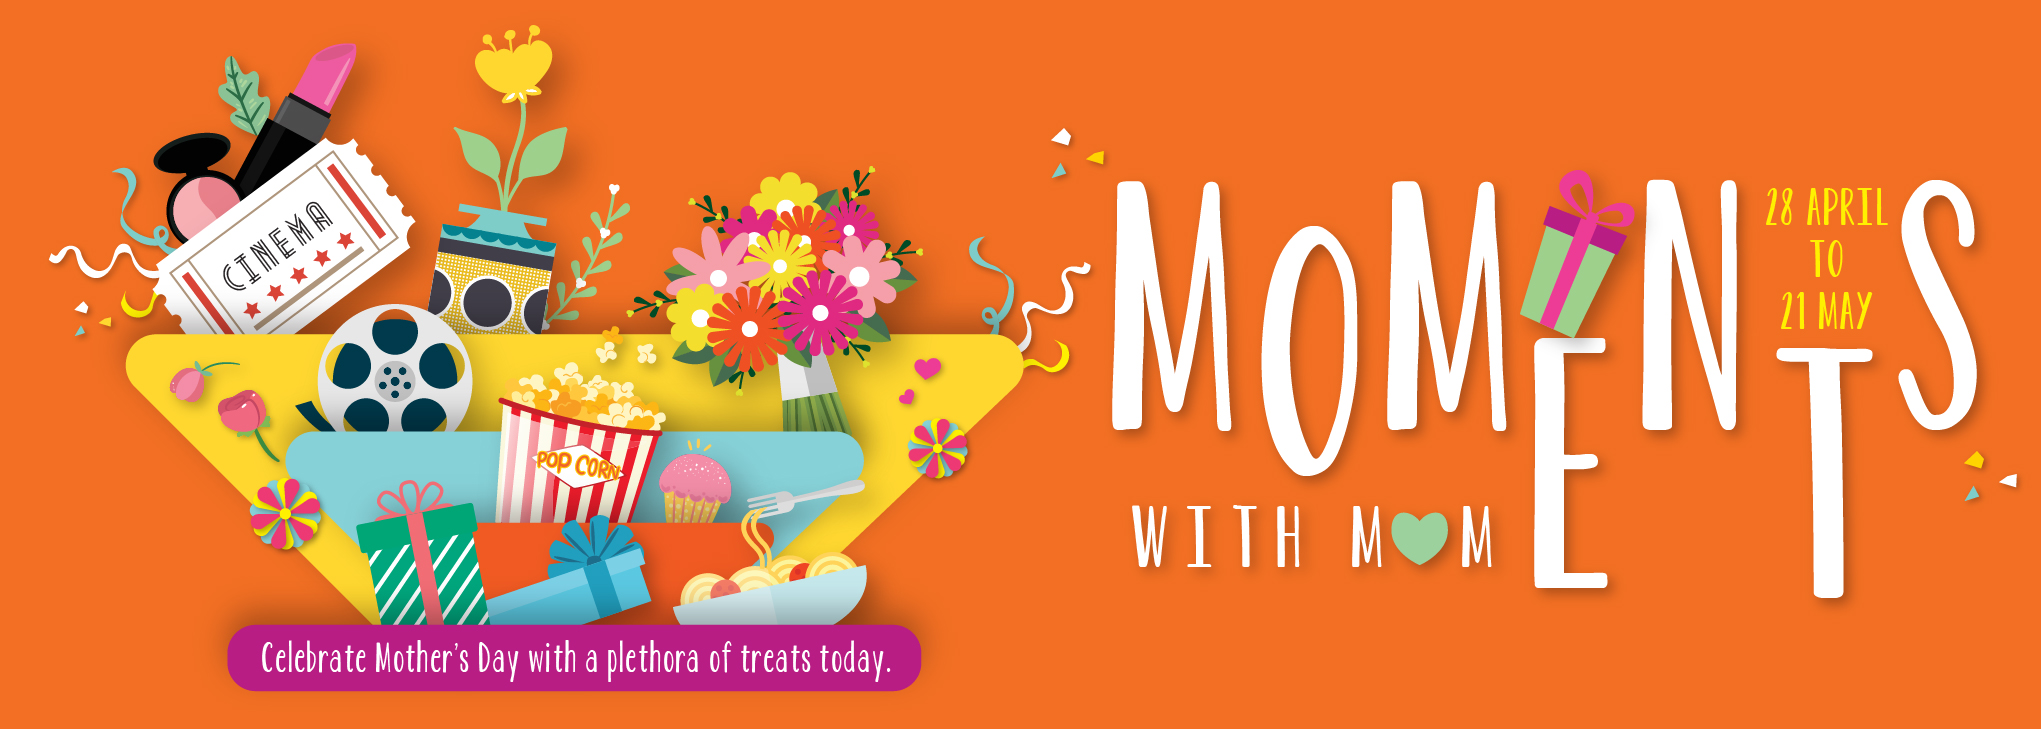 WM03-17 West Mall Mothers Day Web Banner